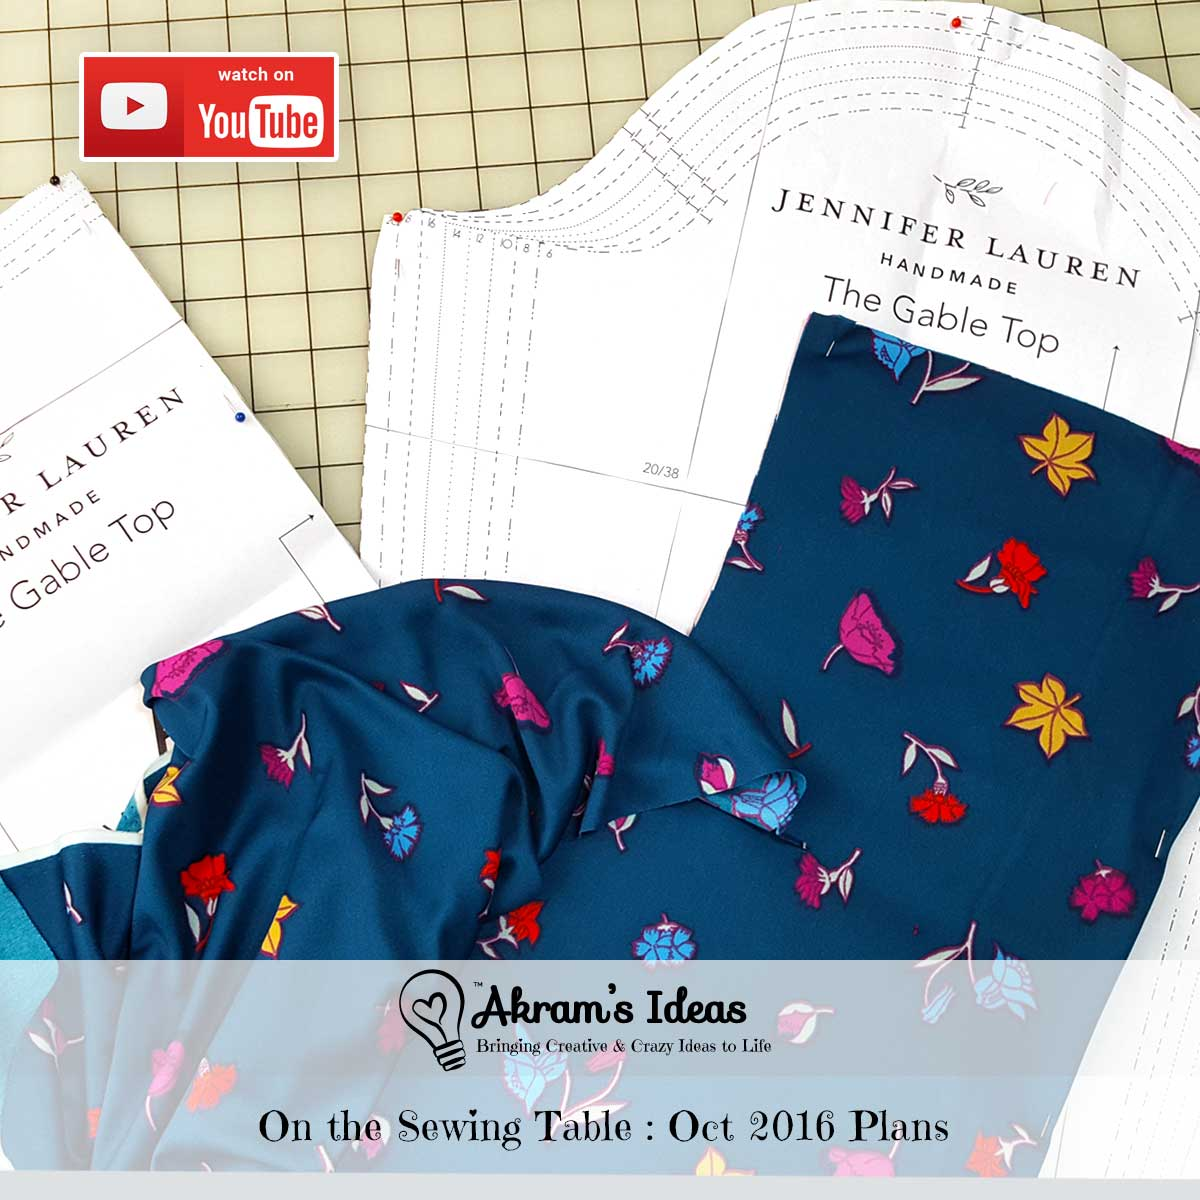 See what's on my sewing table in the latest episode (video) of Akram's Ideas, where I share my October 2016 sewing plans.